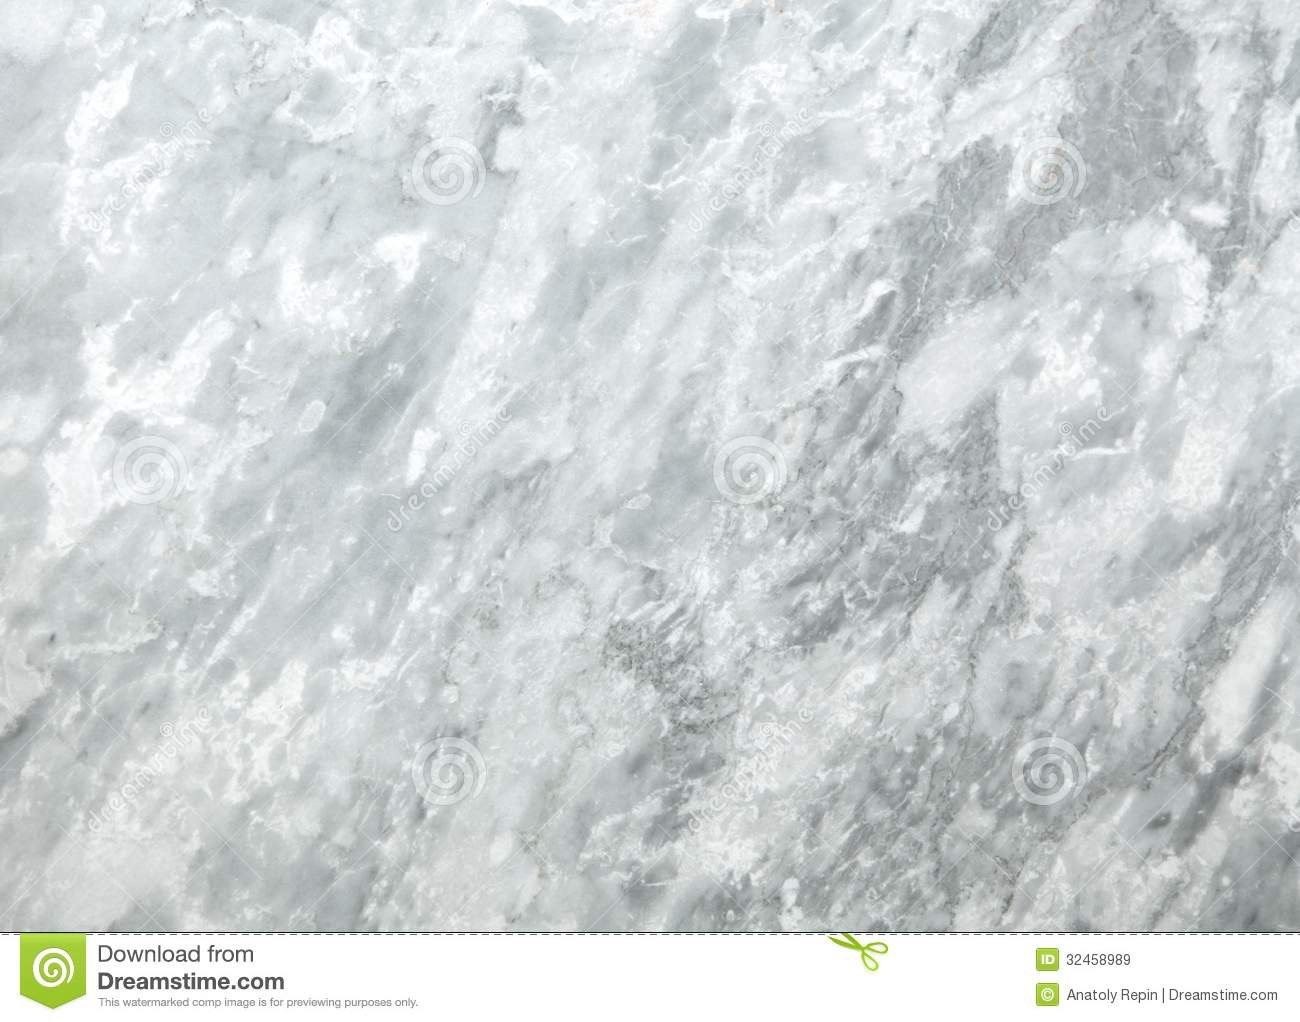 Most Inspiring Wallpaper High Quality Marble - high-quality-marble-texture-efest-grey-natural-32458989  Graphic_74169.jpg